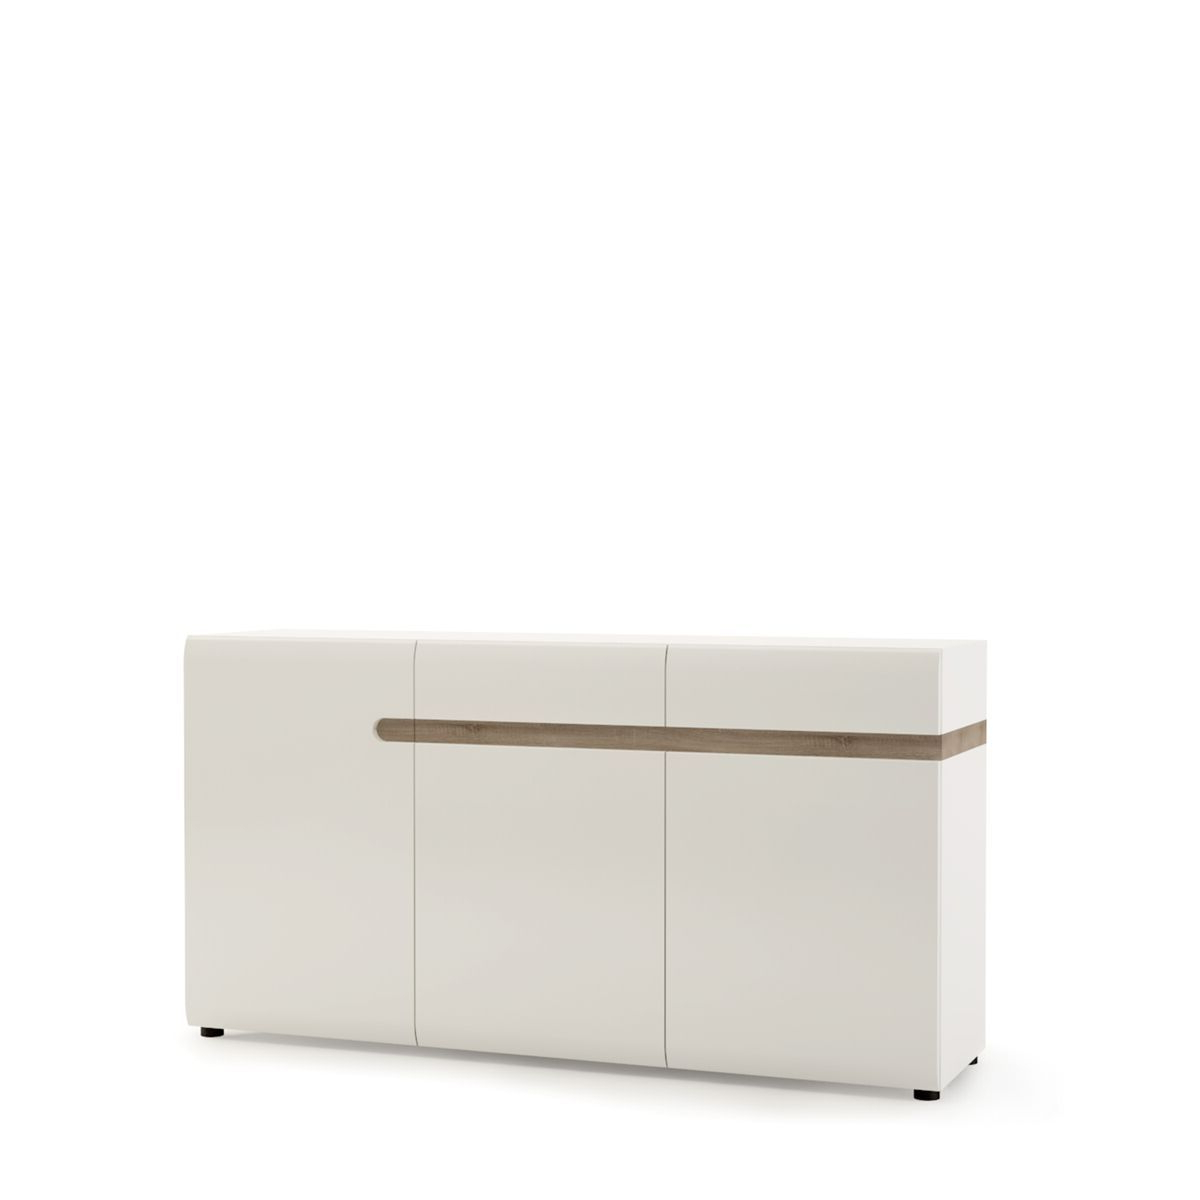 Furniture To Go Chelsea Living 2 Drawer 3 Door Sideboard In White In Trendy Burn Tan Finish 2 Door Sideboards (View 9 of 20)